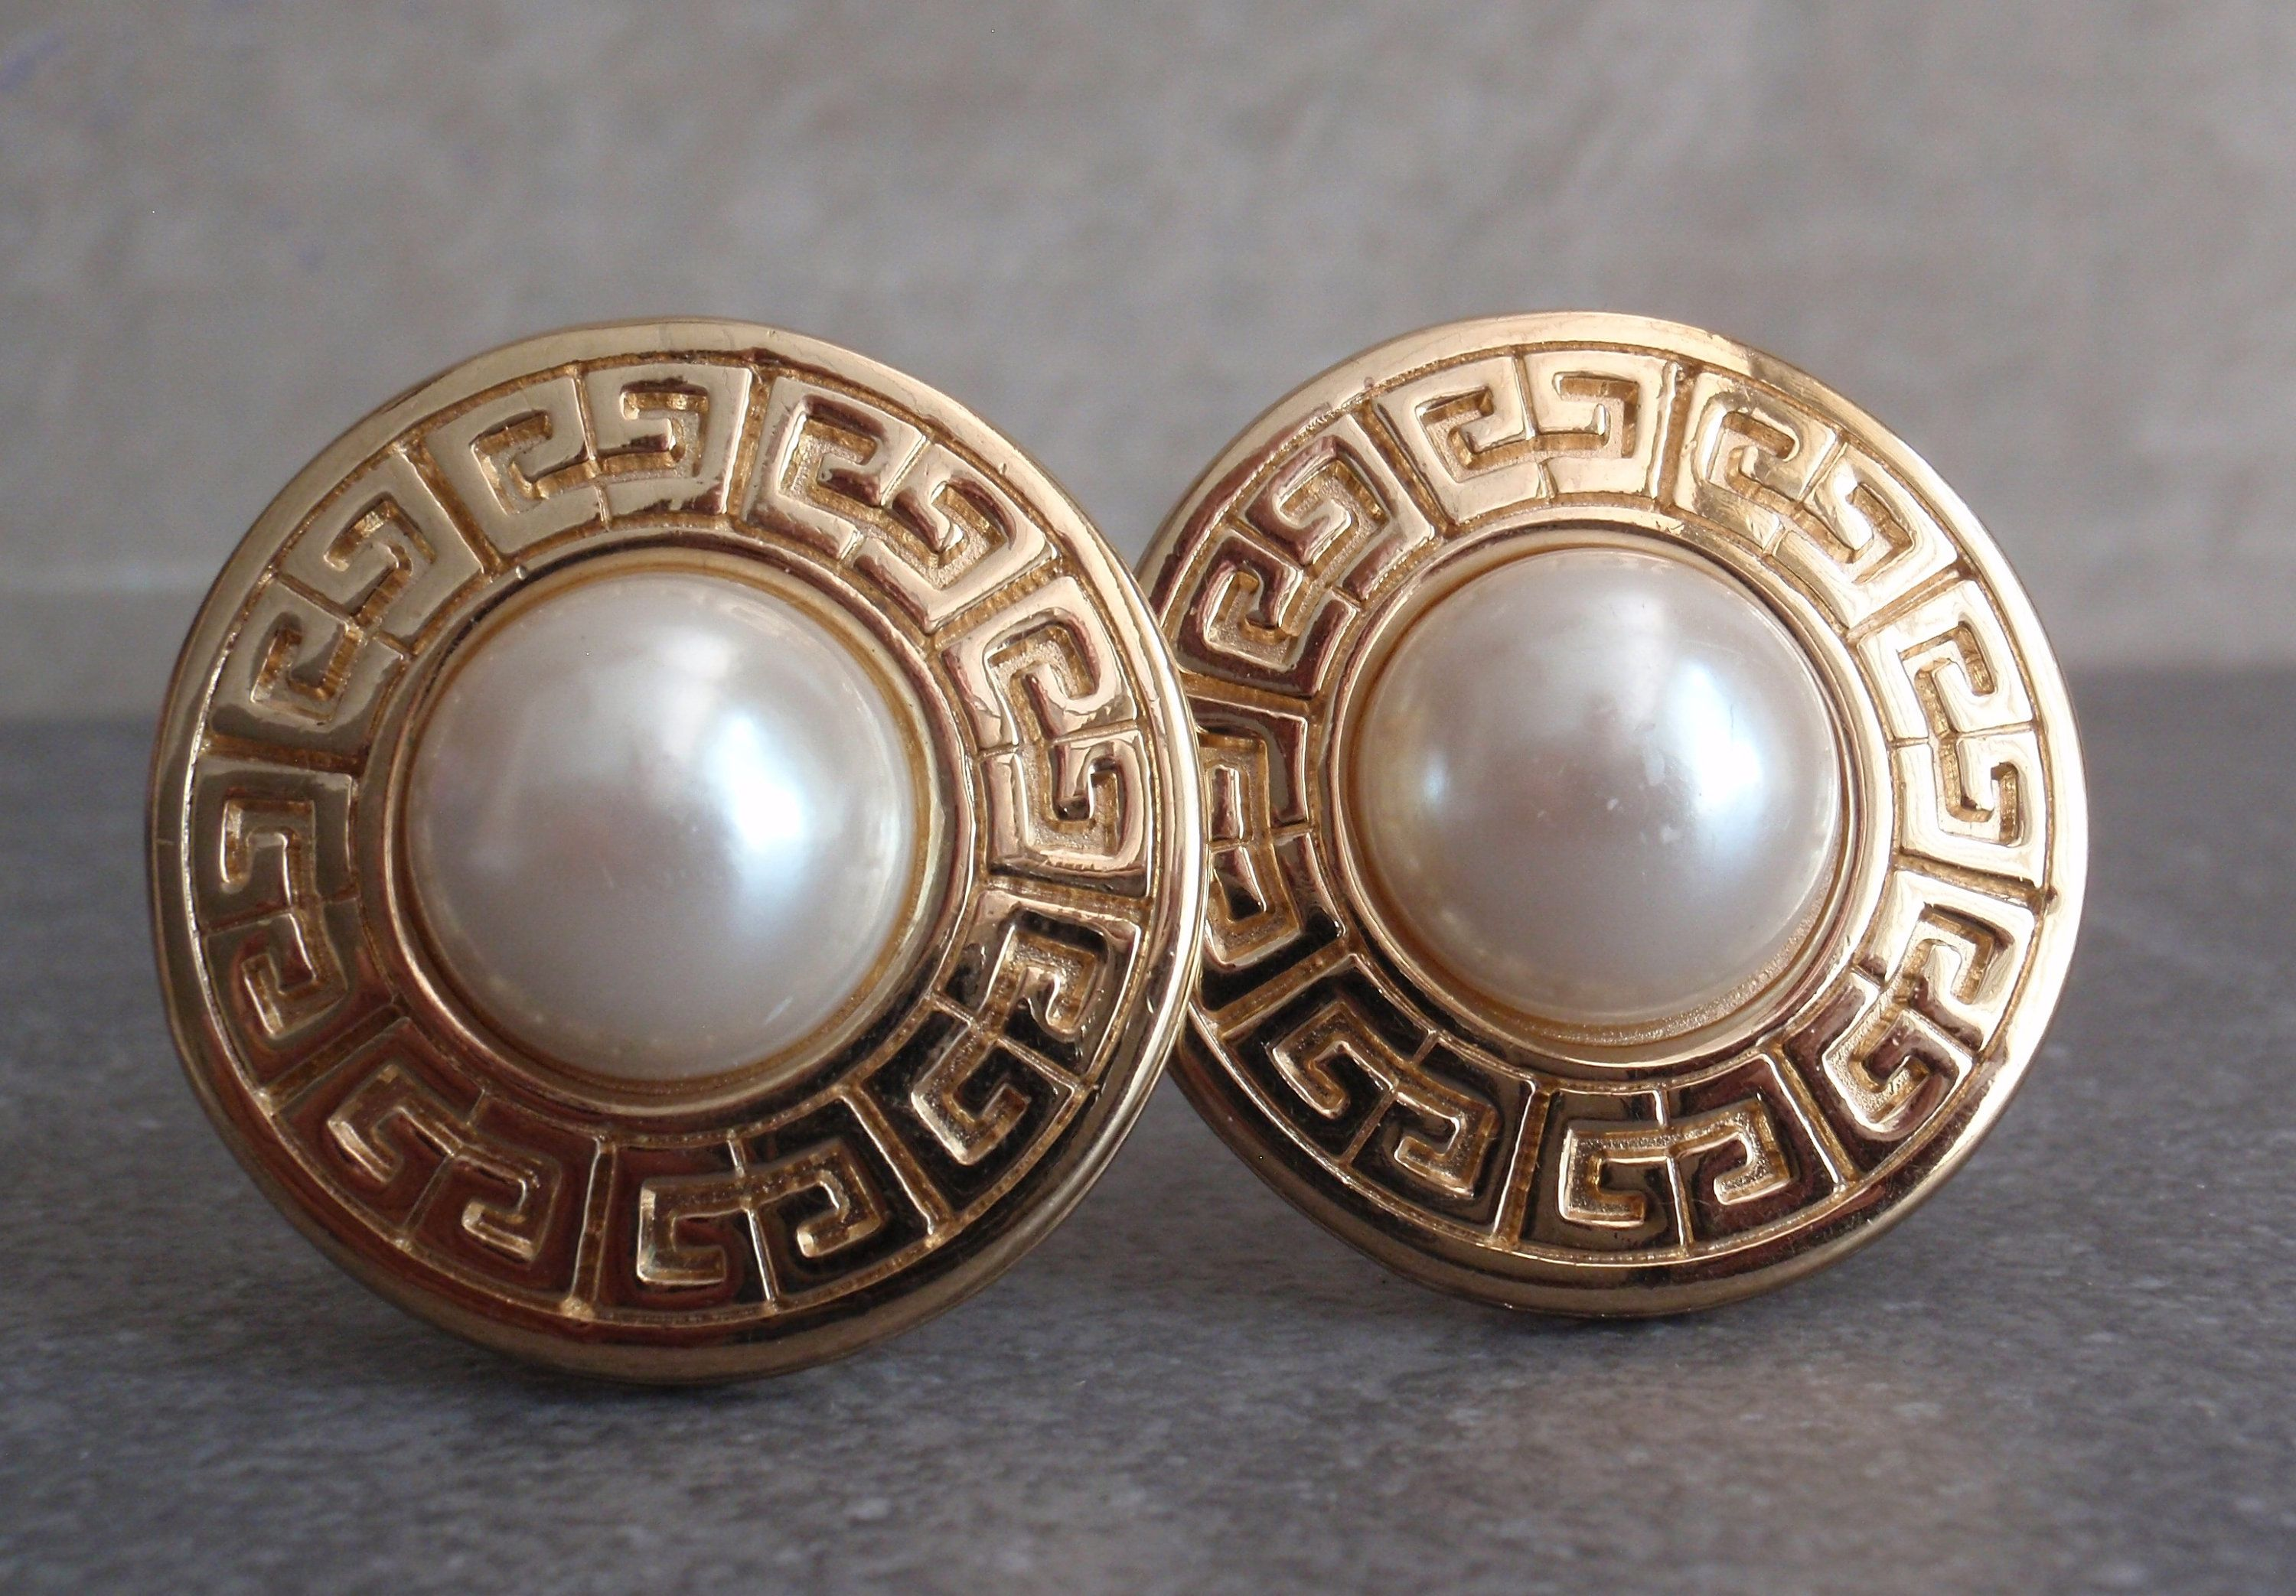 Givenchy Pearl Earrings Round Gold Tone Clip On Vintage 110714co Fauxpearls Designersigned